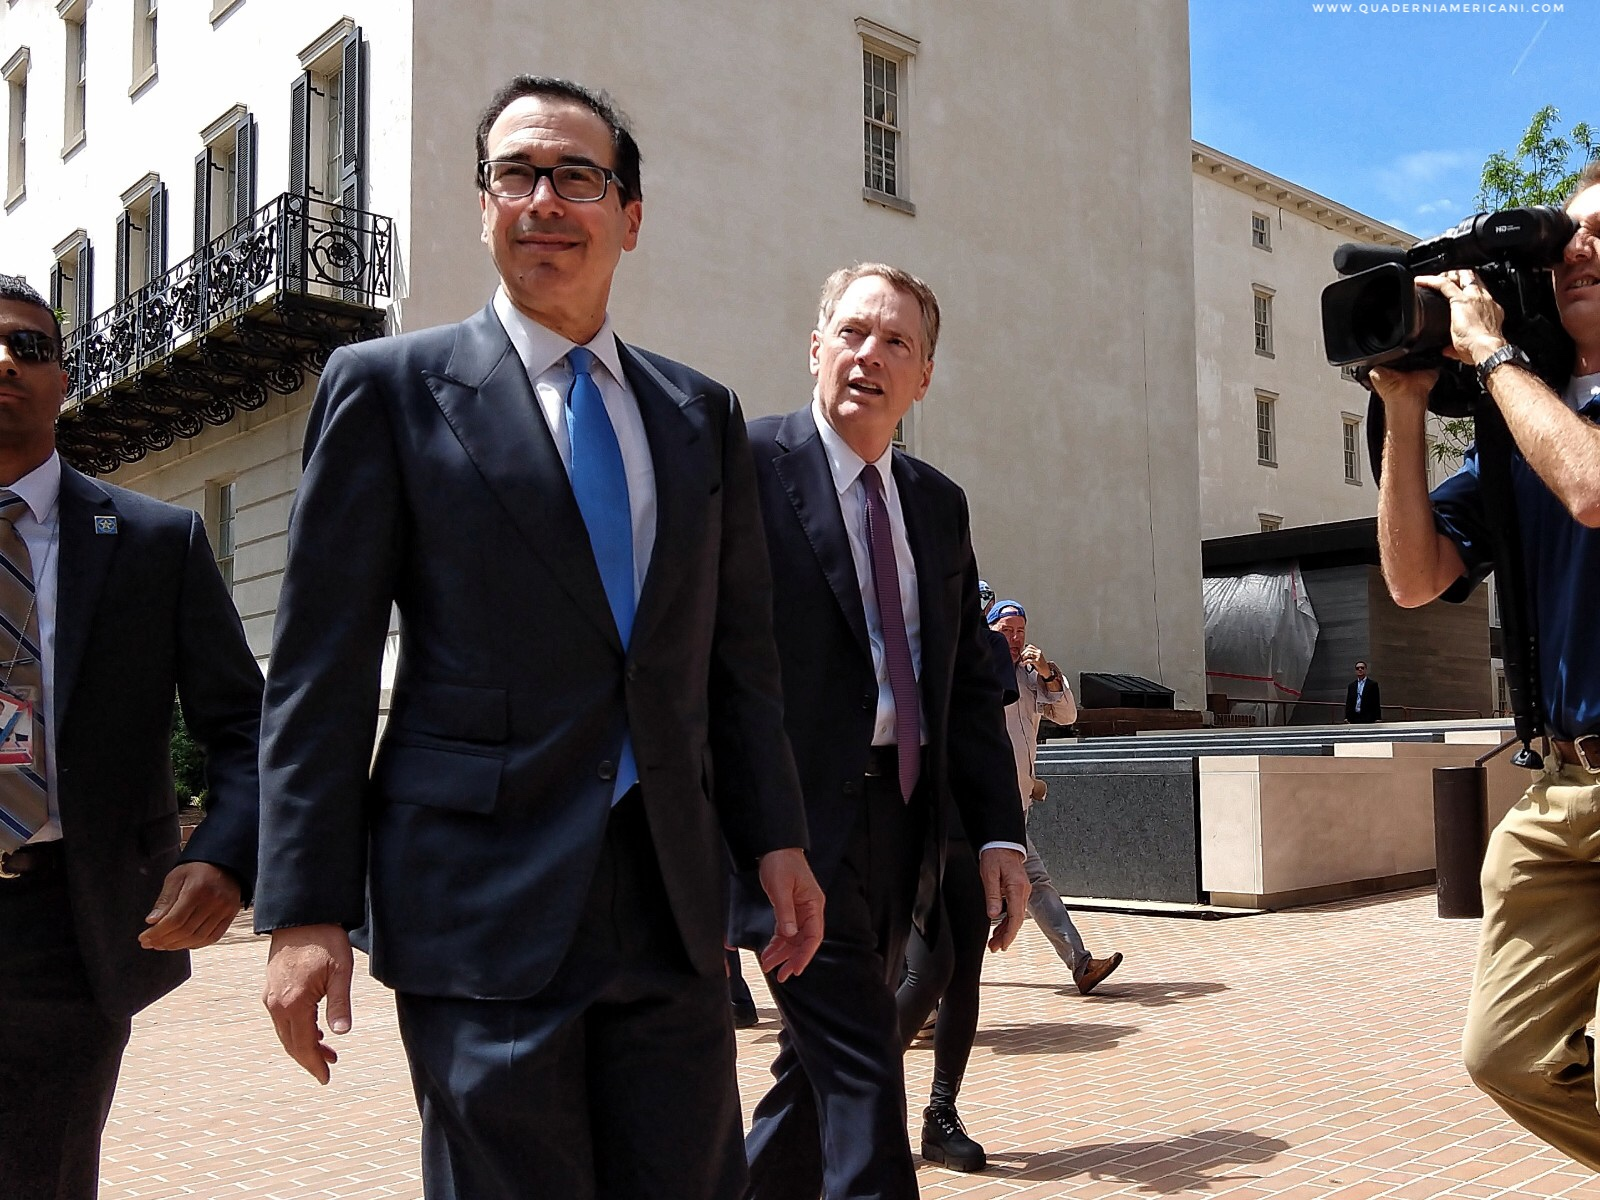 Steve Mnuchin, Robert Lighthizer, Trade War, Guerra Commerciale